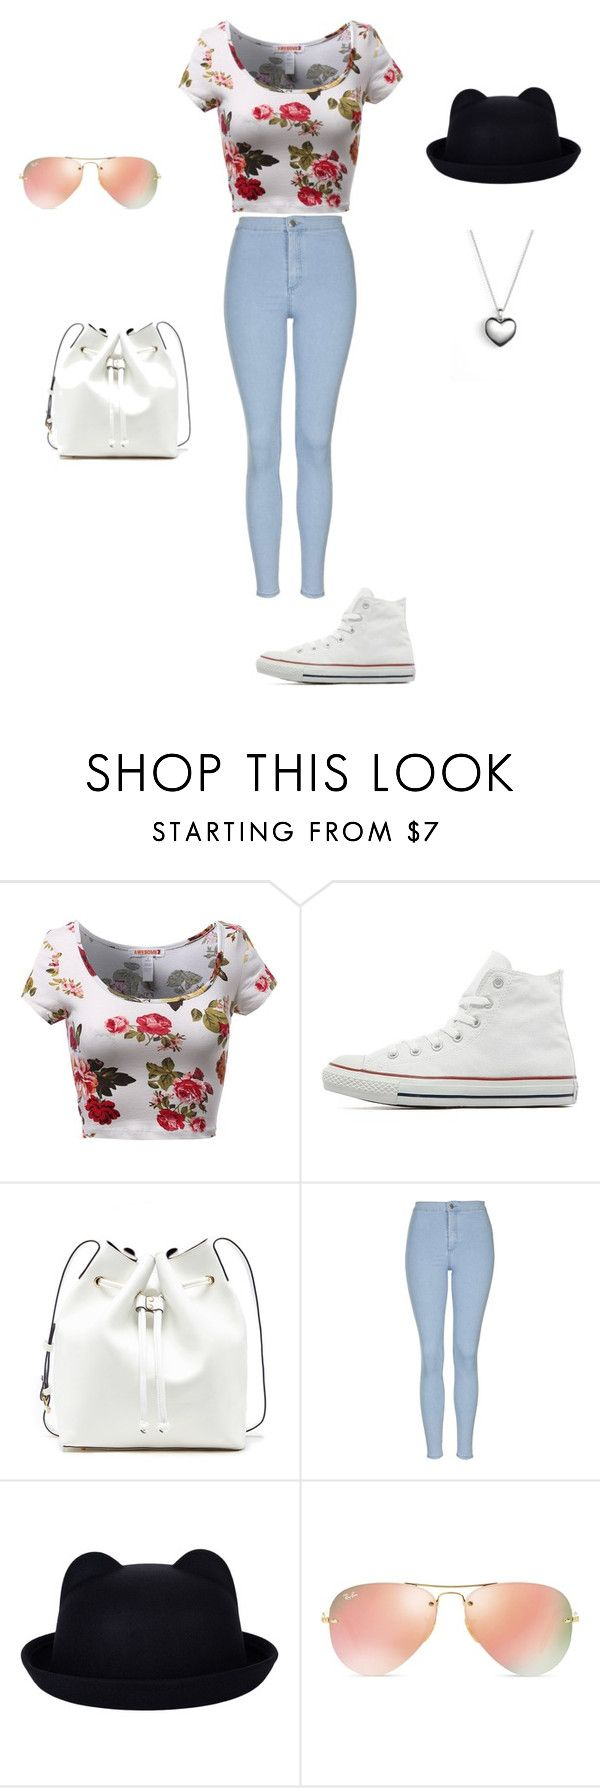 """Parc <3"" by neculaescu-alexia on Polyvore featuring Converse, Sole Society, Topshop, Ray-Ban, Pandora, women's clothing, women, female, woman and misses"